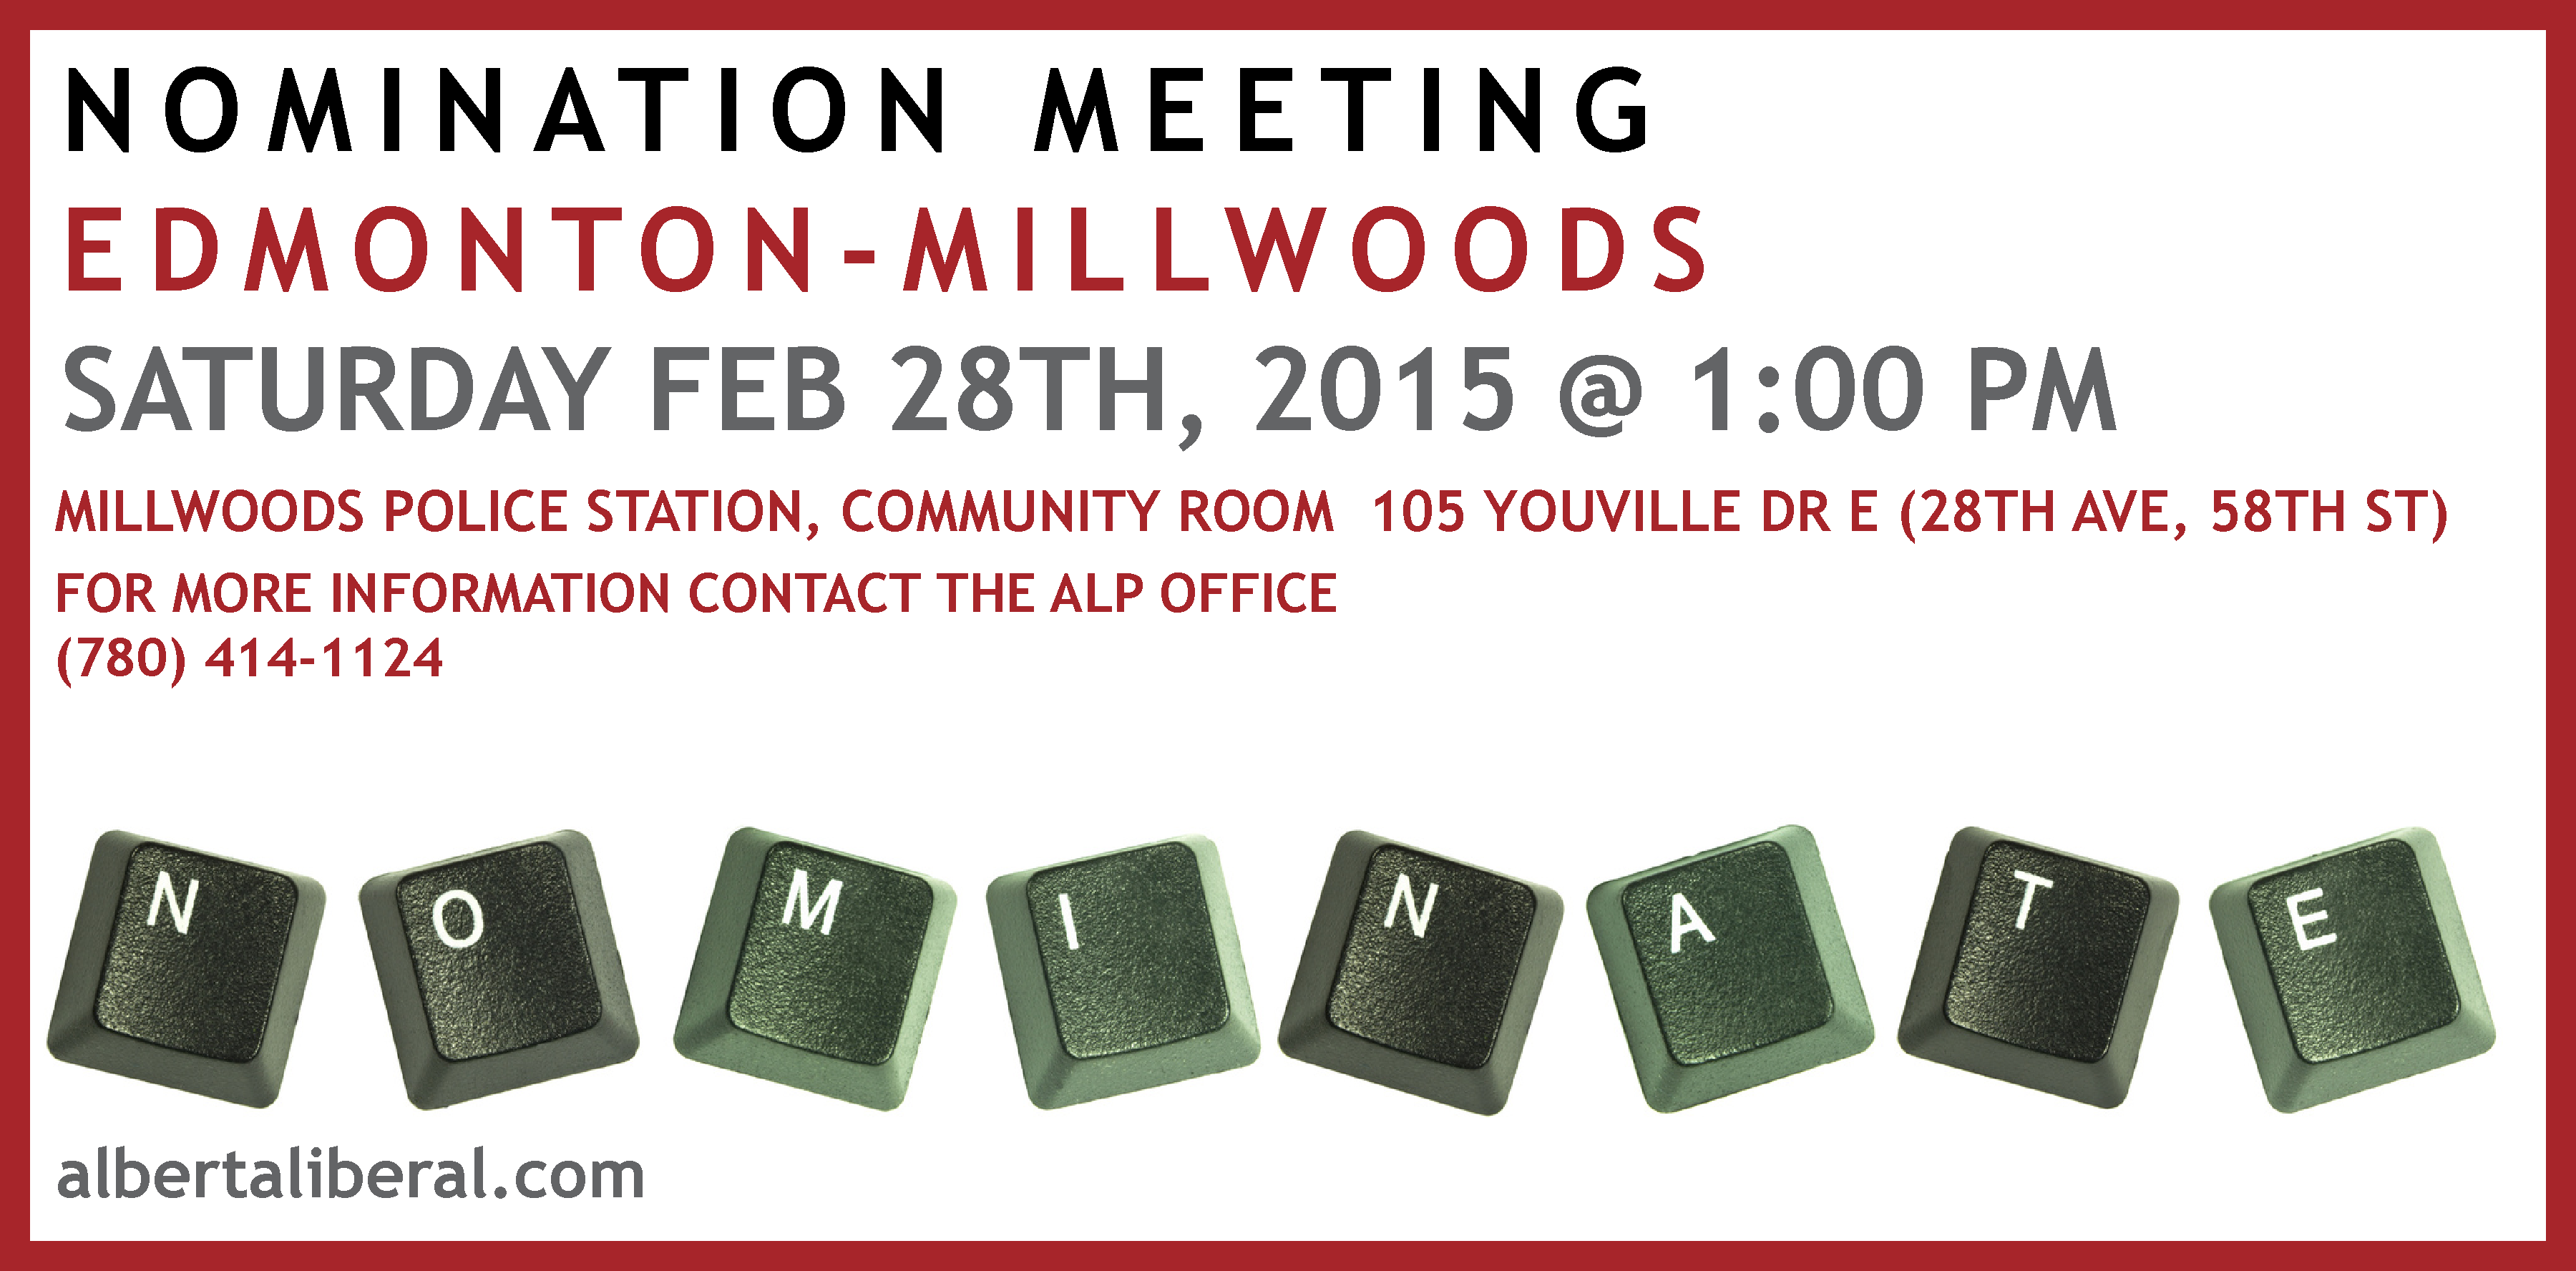 Nomination_Meeting_Edmonton_MILLWOODS.png